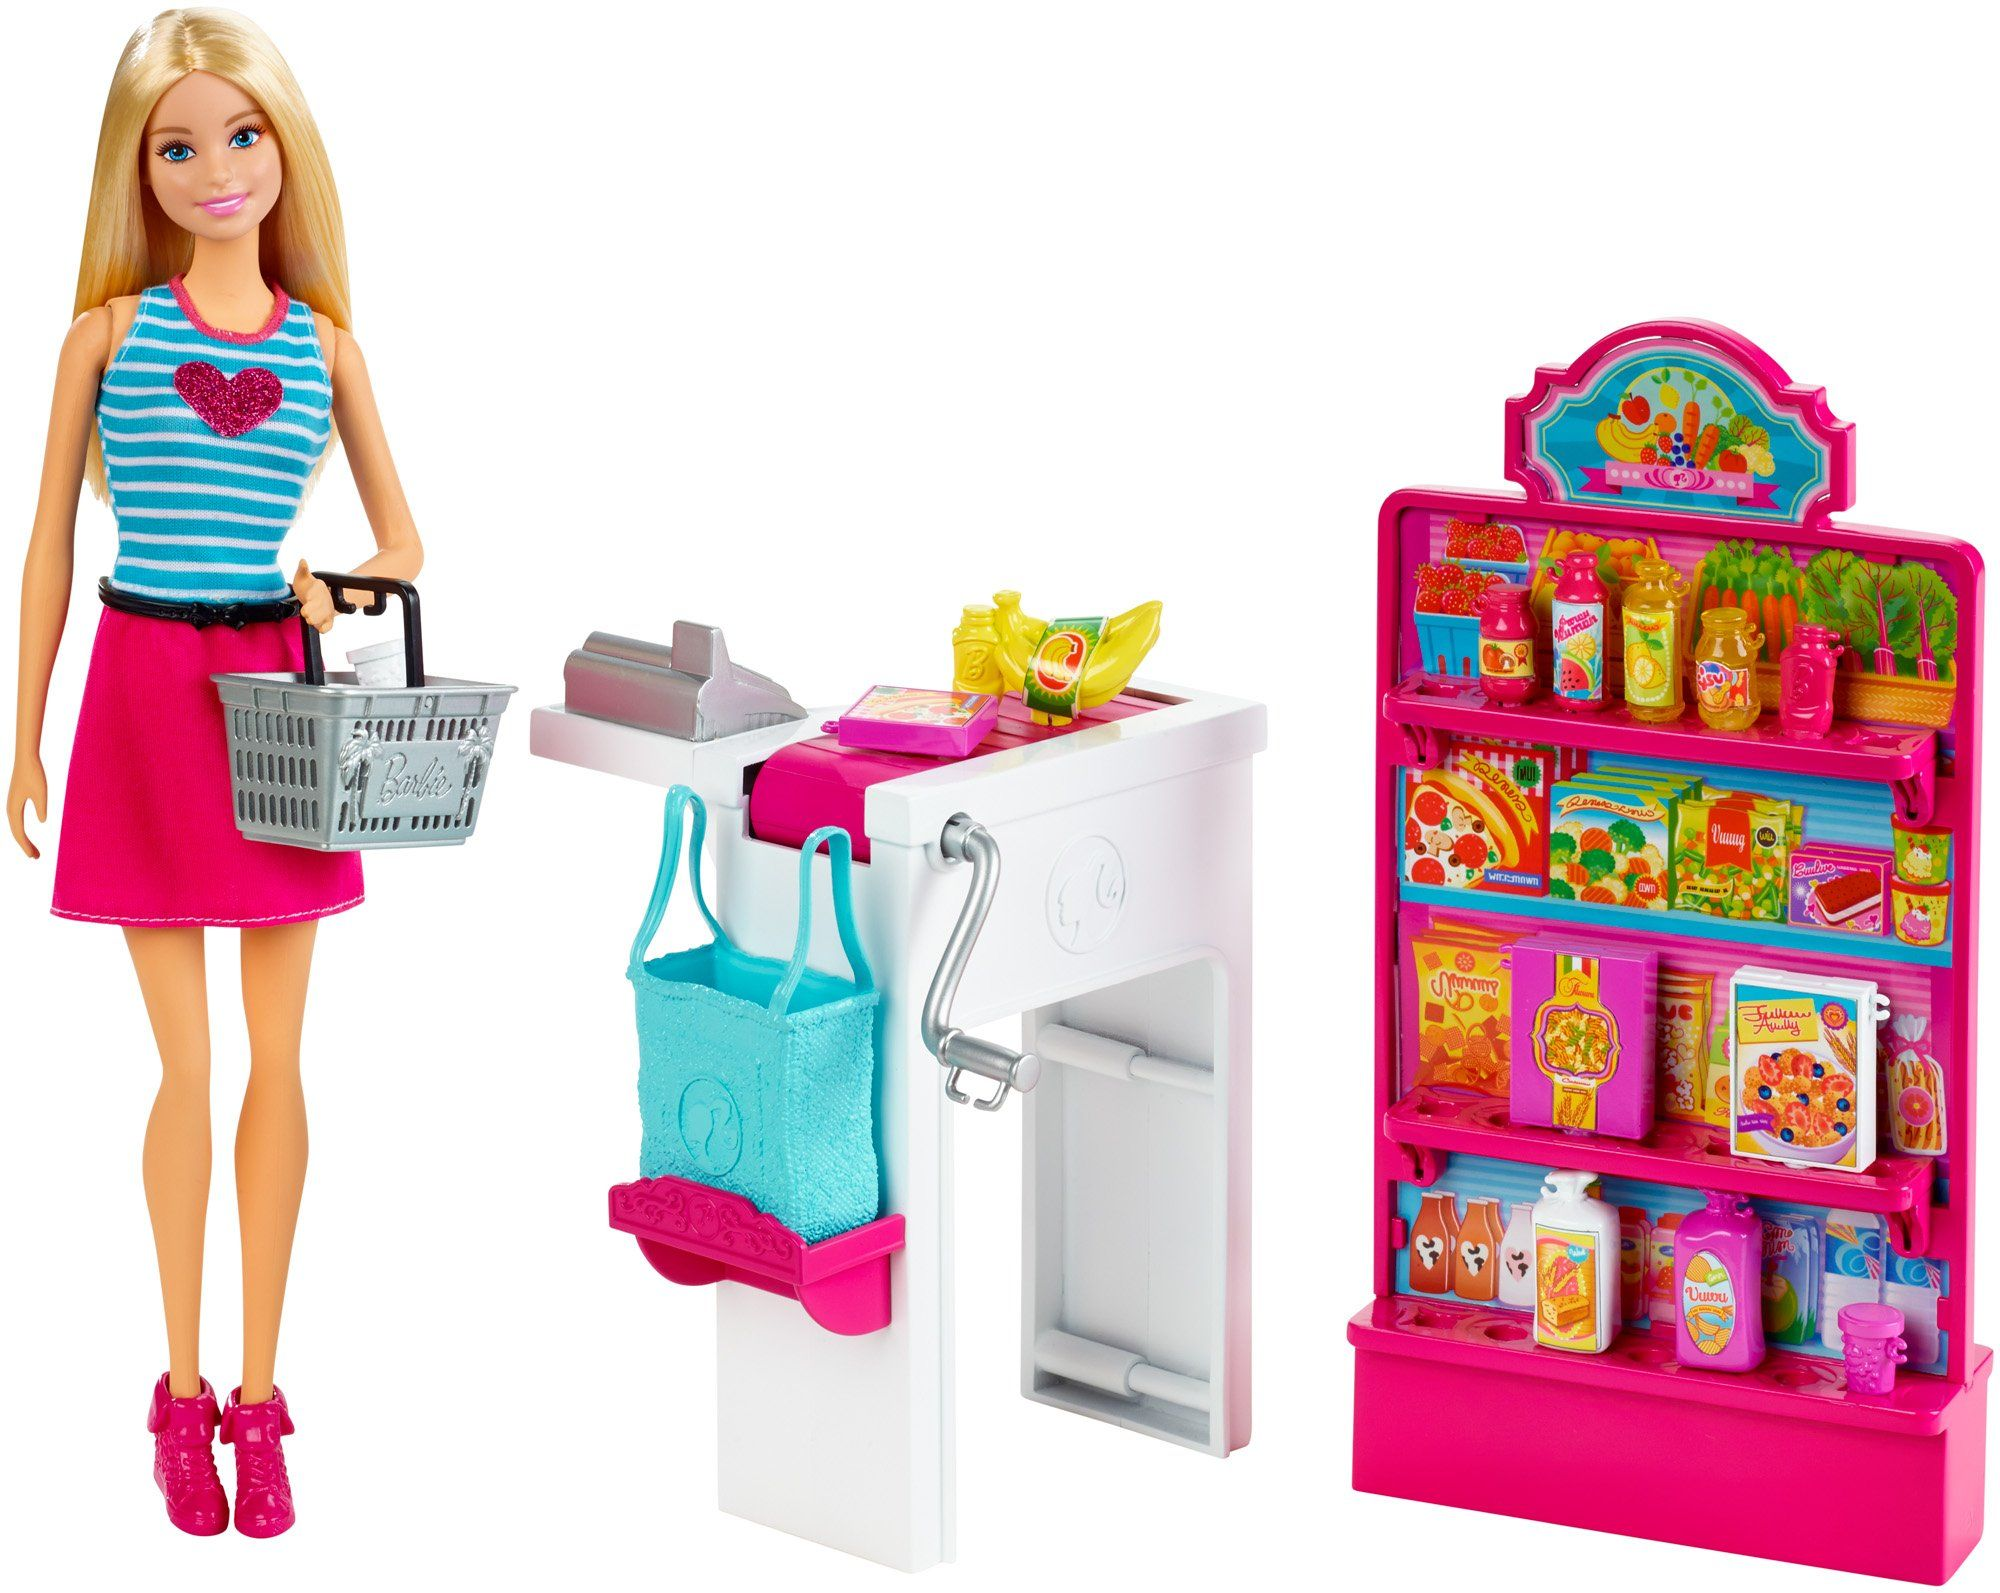 Barbie deluxe furniture stovetop to tabletop kitchen doll target - Barbie Malibu Ave Grocery Store With Barbie Doll Playset